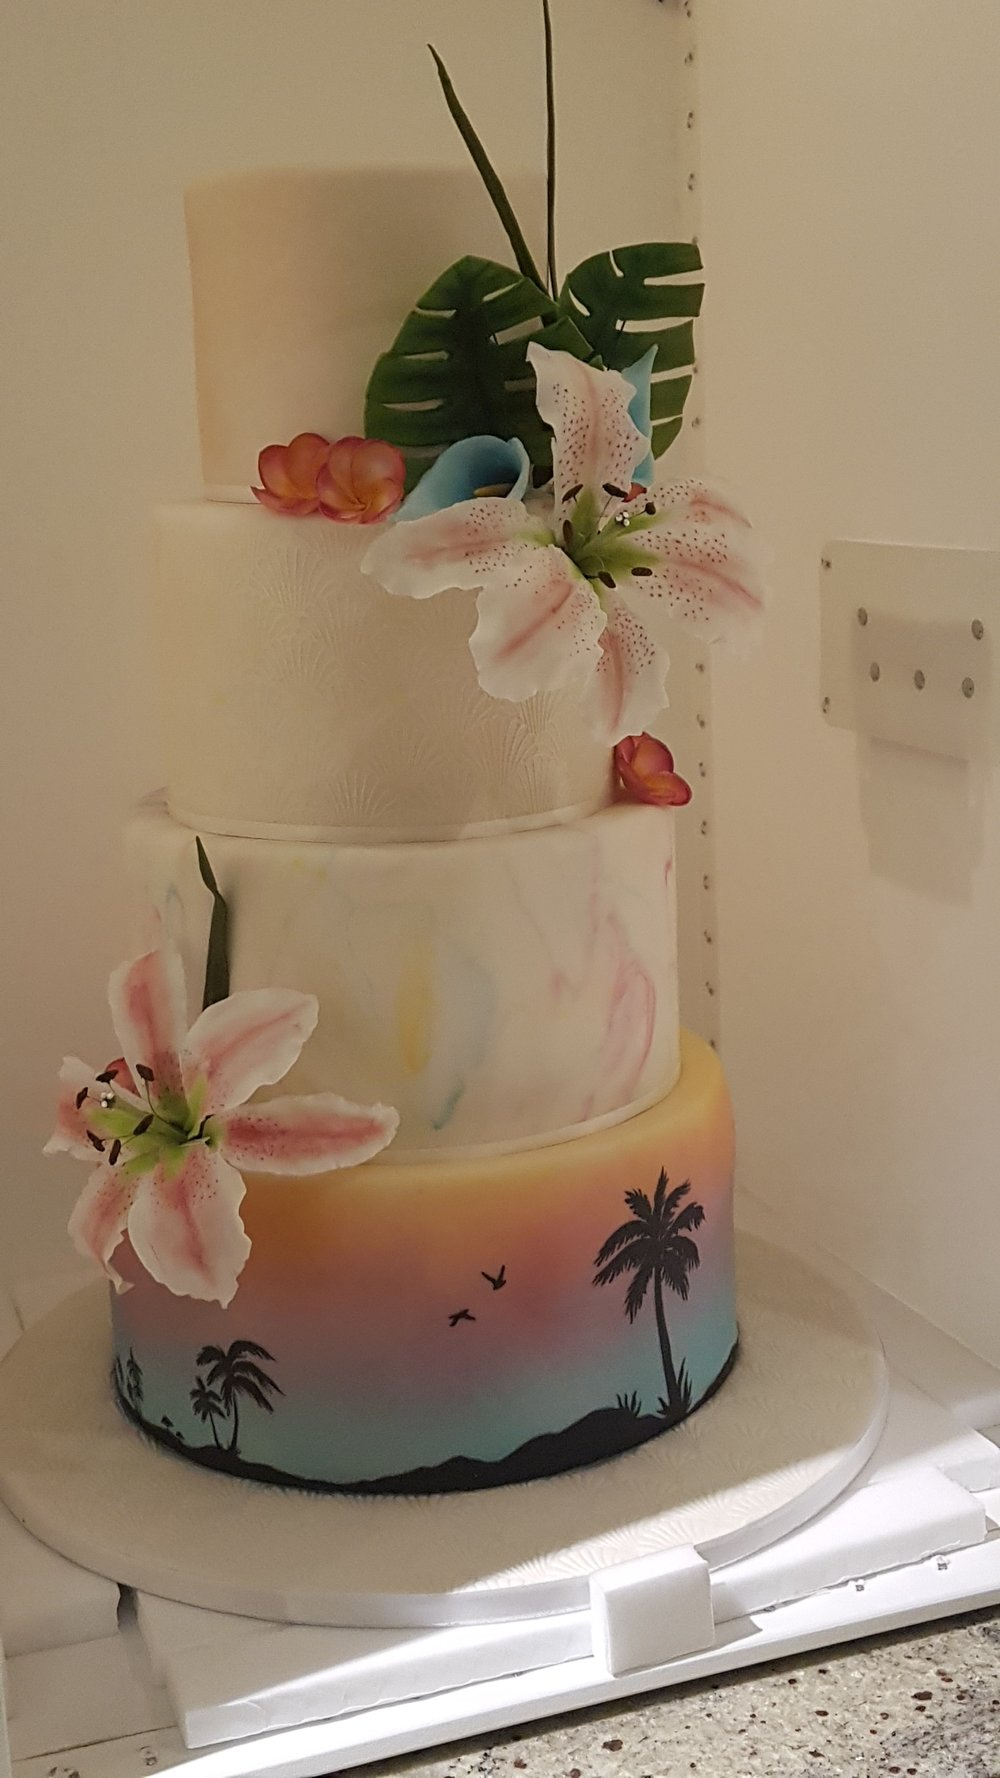 Airbrushed, Marbling, Sugar Flowers